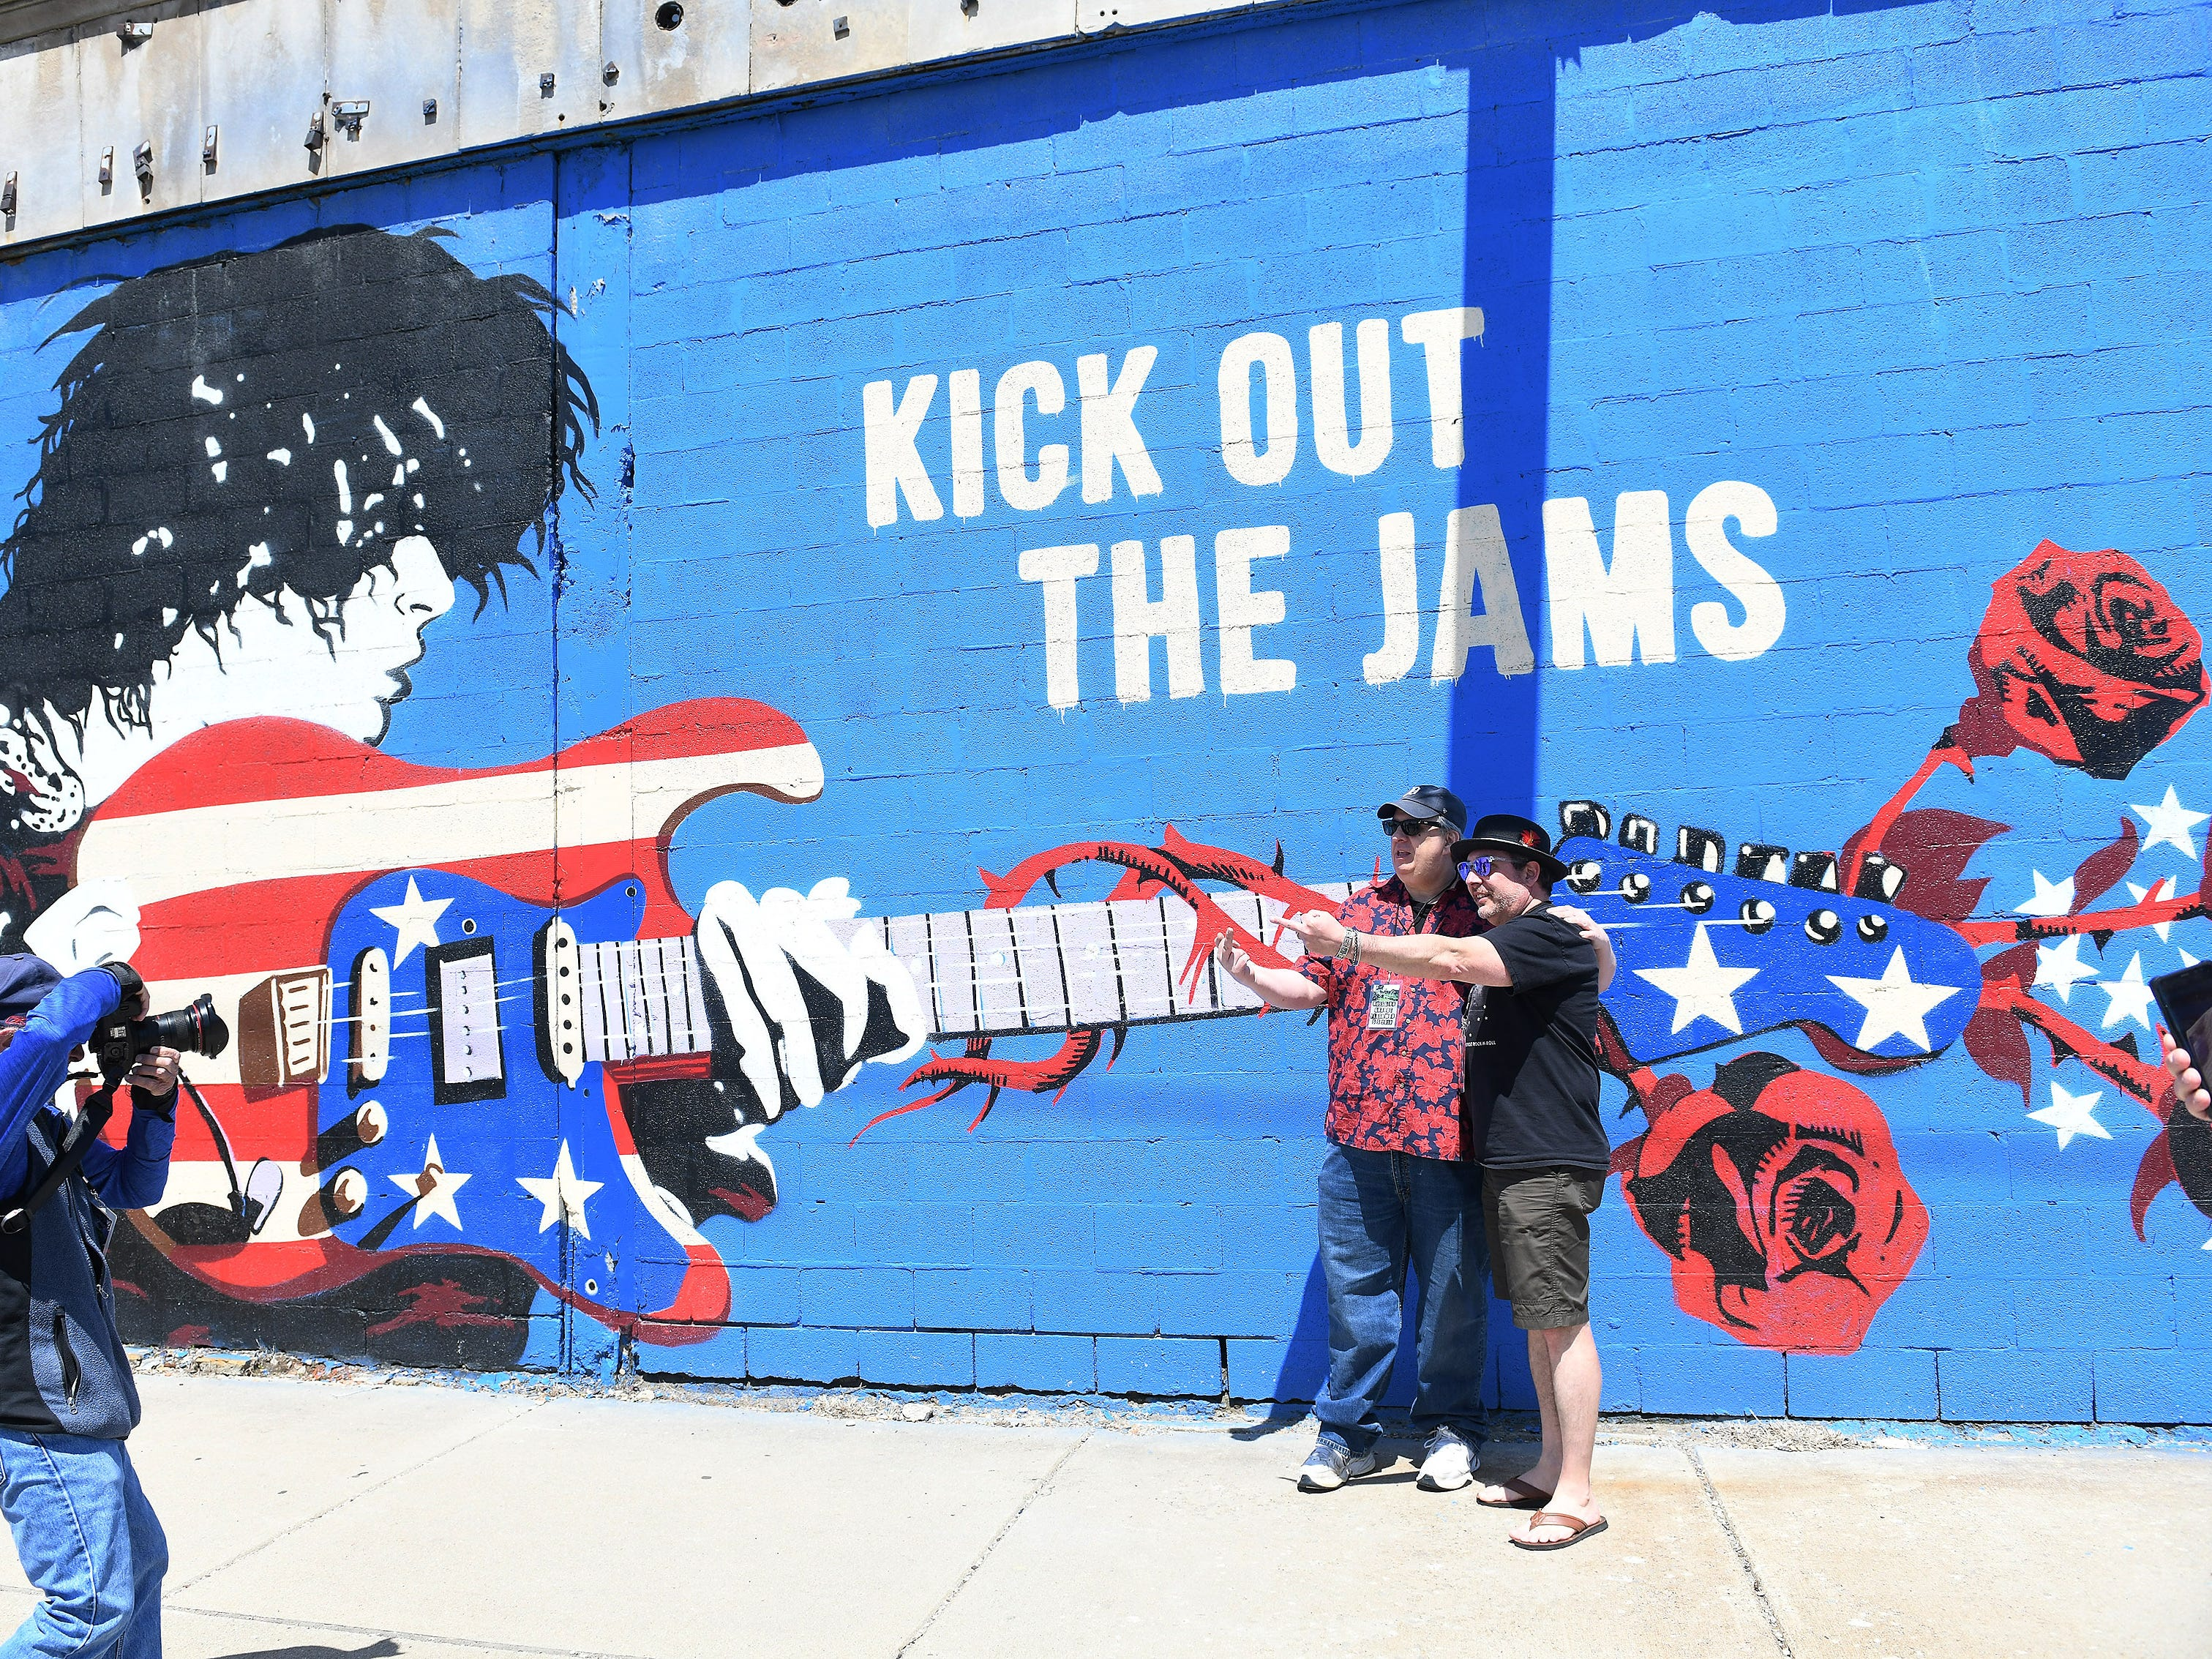 Leo Early from Friends of the Grande, left, and filmmaker Tony D'Annunzio are photographed in front of the mural on the front of the Grande Ballroom as people gather to celebrate the life of Russ Gibb in Detroit on May 5, 2019.   Memorial service details are still to come.